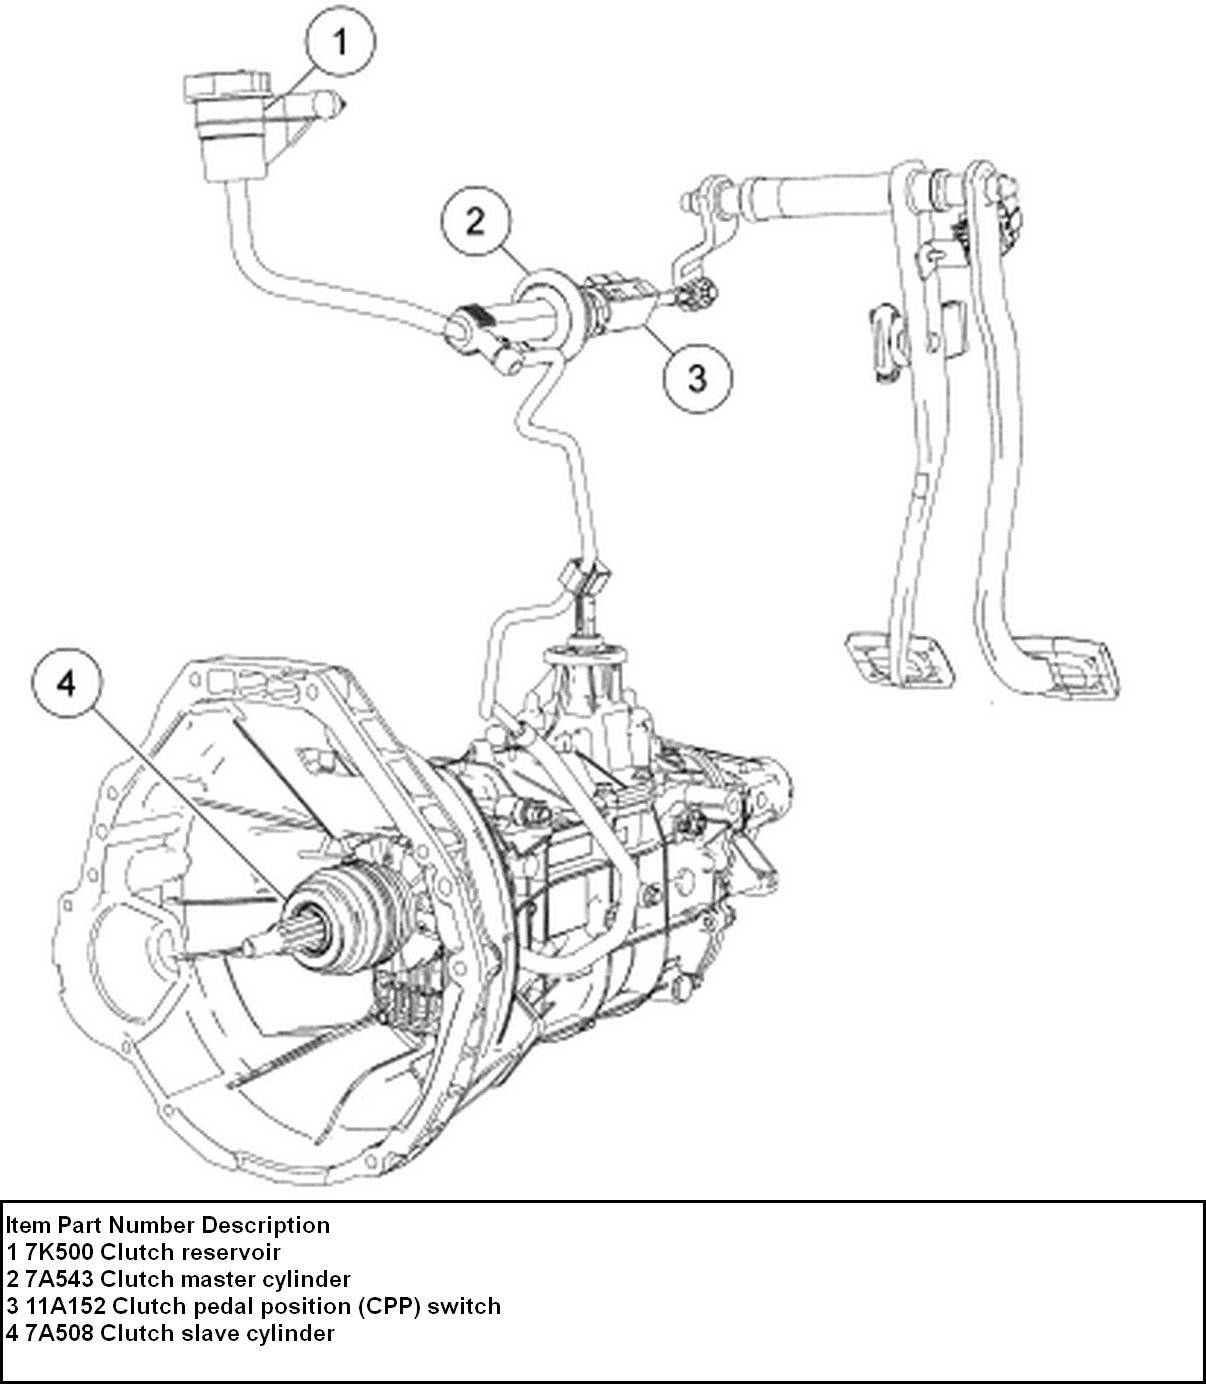 Coleman Lantern Schematic together with Electrical Wiring Embly likewise Ford Headlight Embly Diagram moreover 1964 C10 Truck Parts likewise 66 Mustang Turn Signal Wiring Diagram. on wiring harness embly